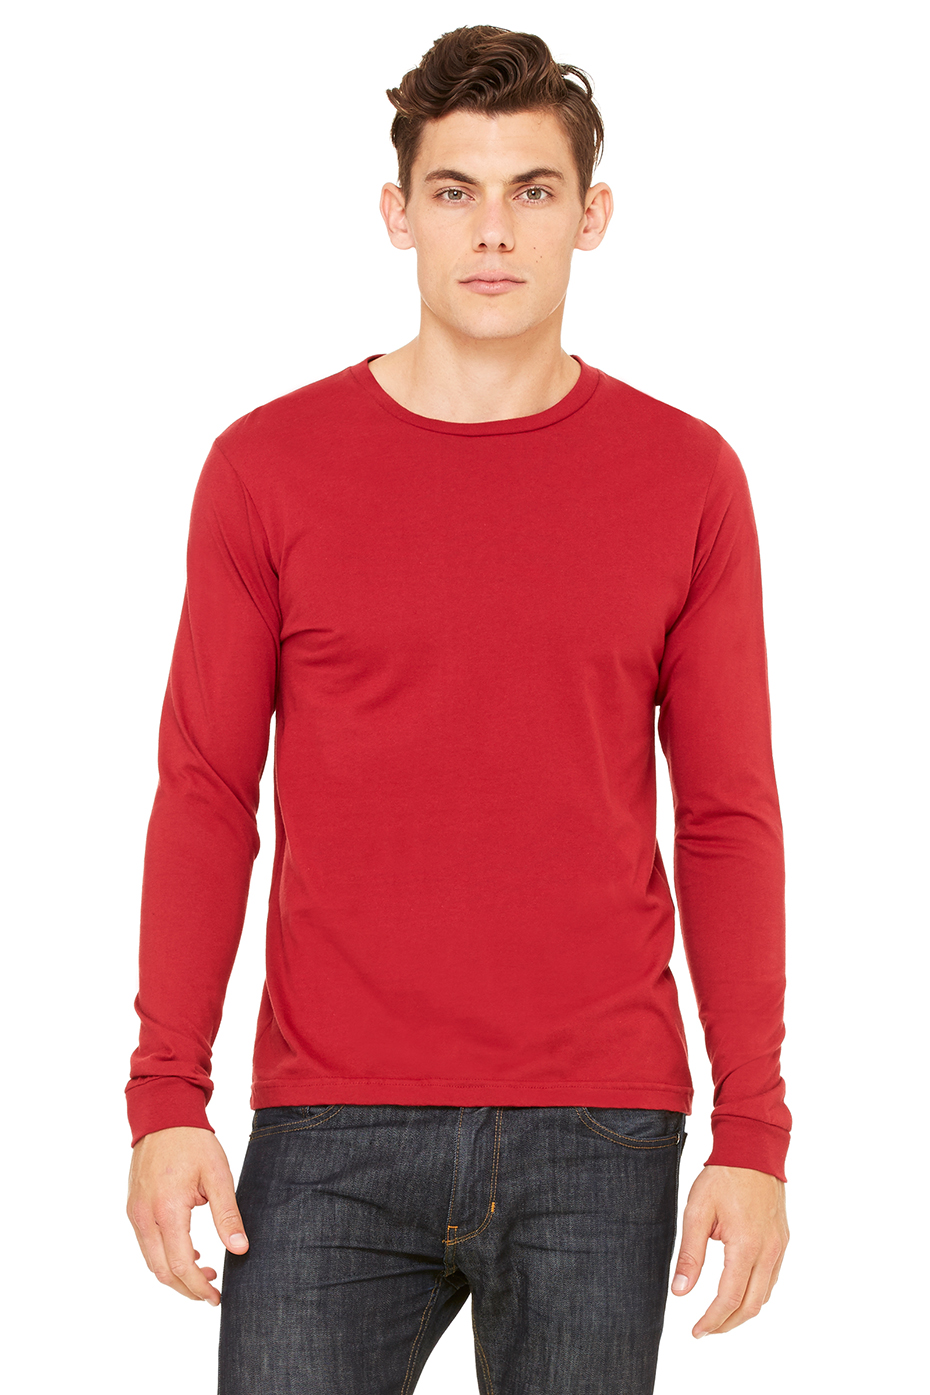 Mens Red Long Sleeve T Shirt